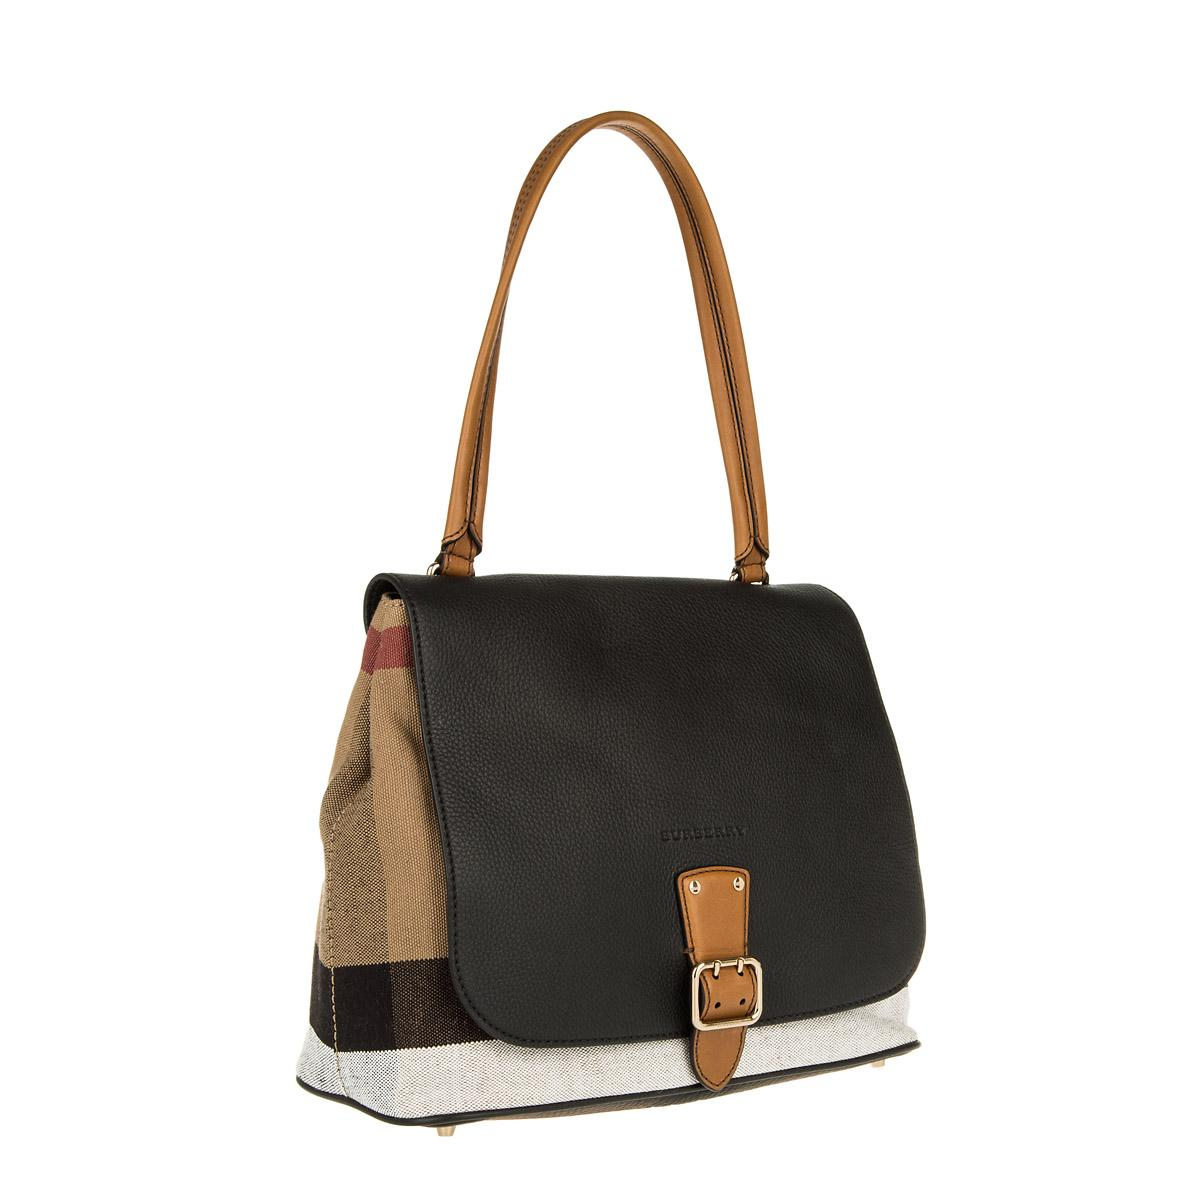 a29a271ebe85 Burberry Brit Grainy Canvas Check Medium Shellwood Satchel Black in ...